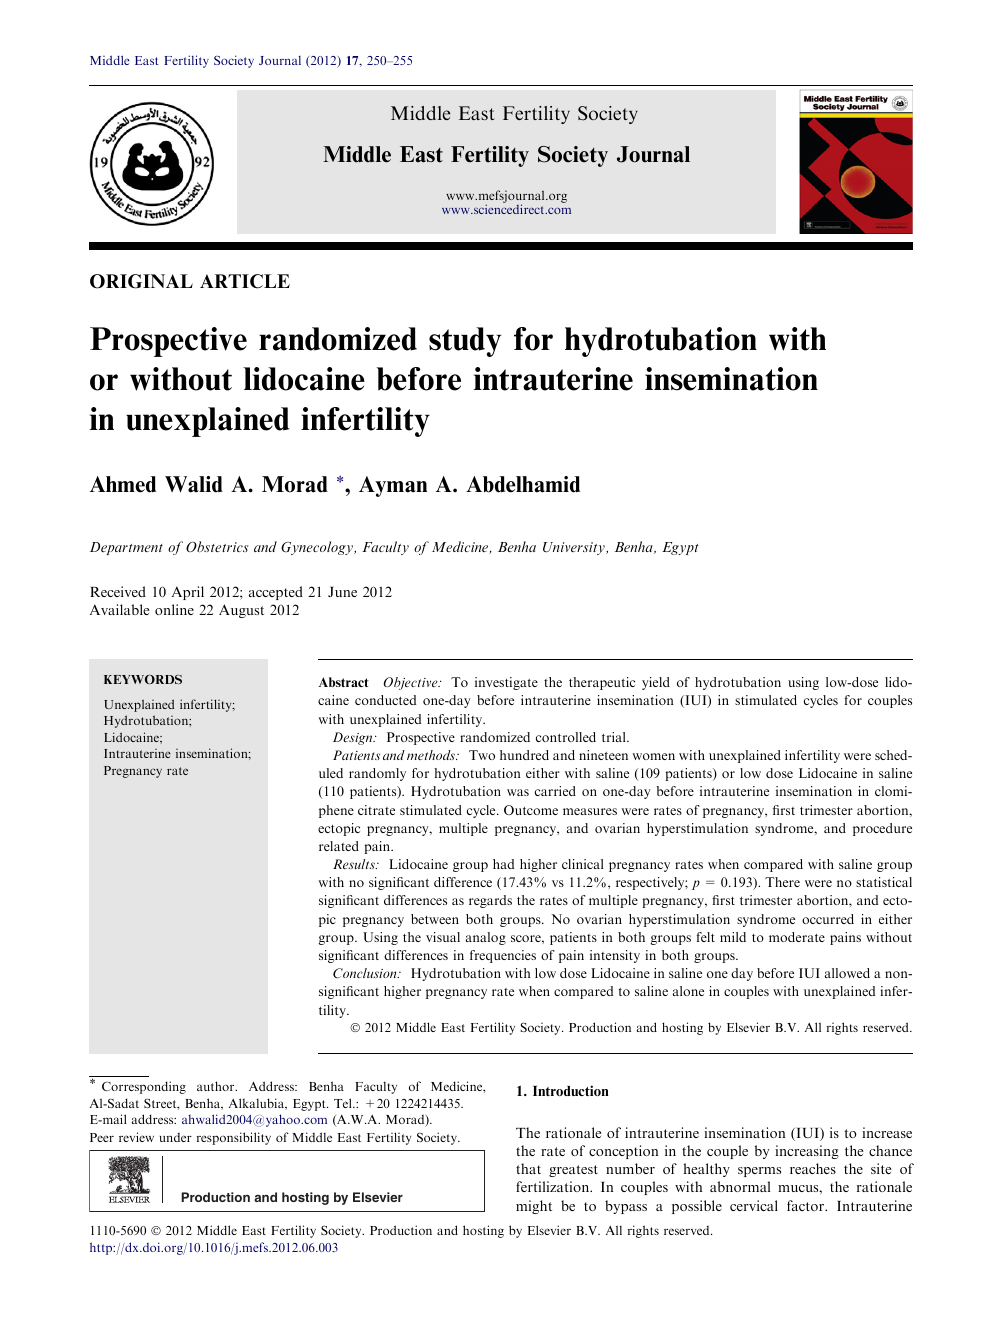 Prospective randomized study for hydrotubation with or